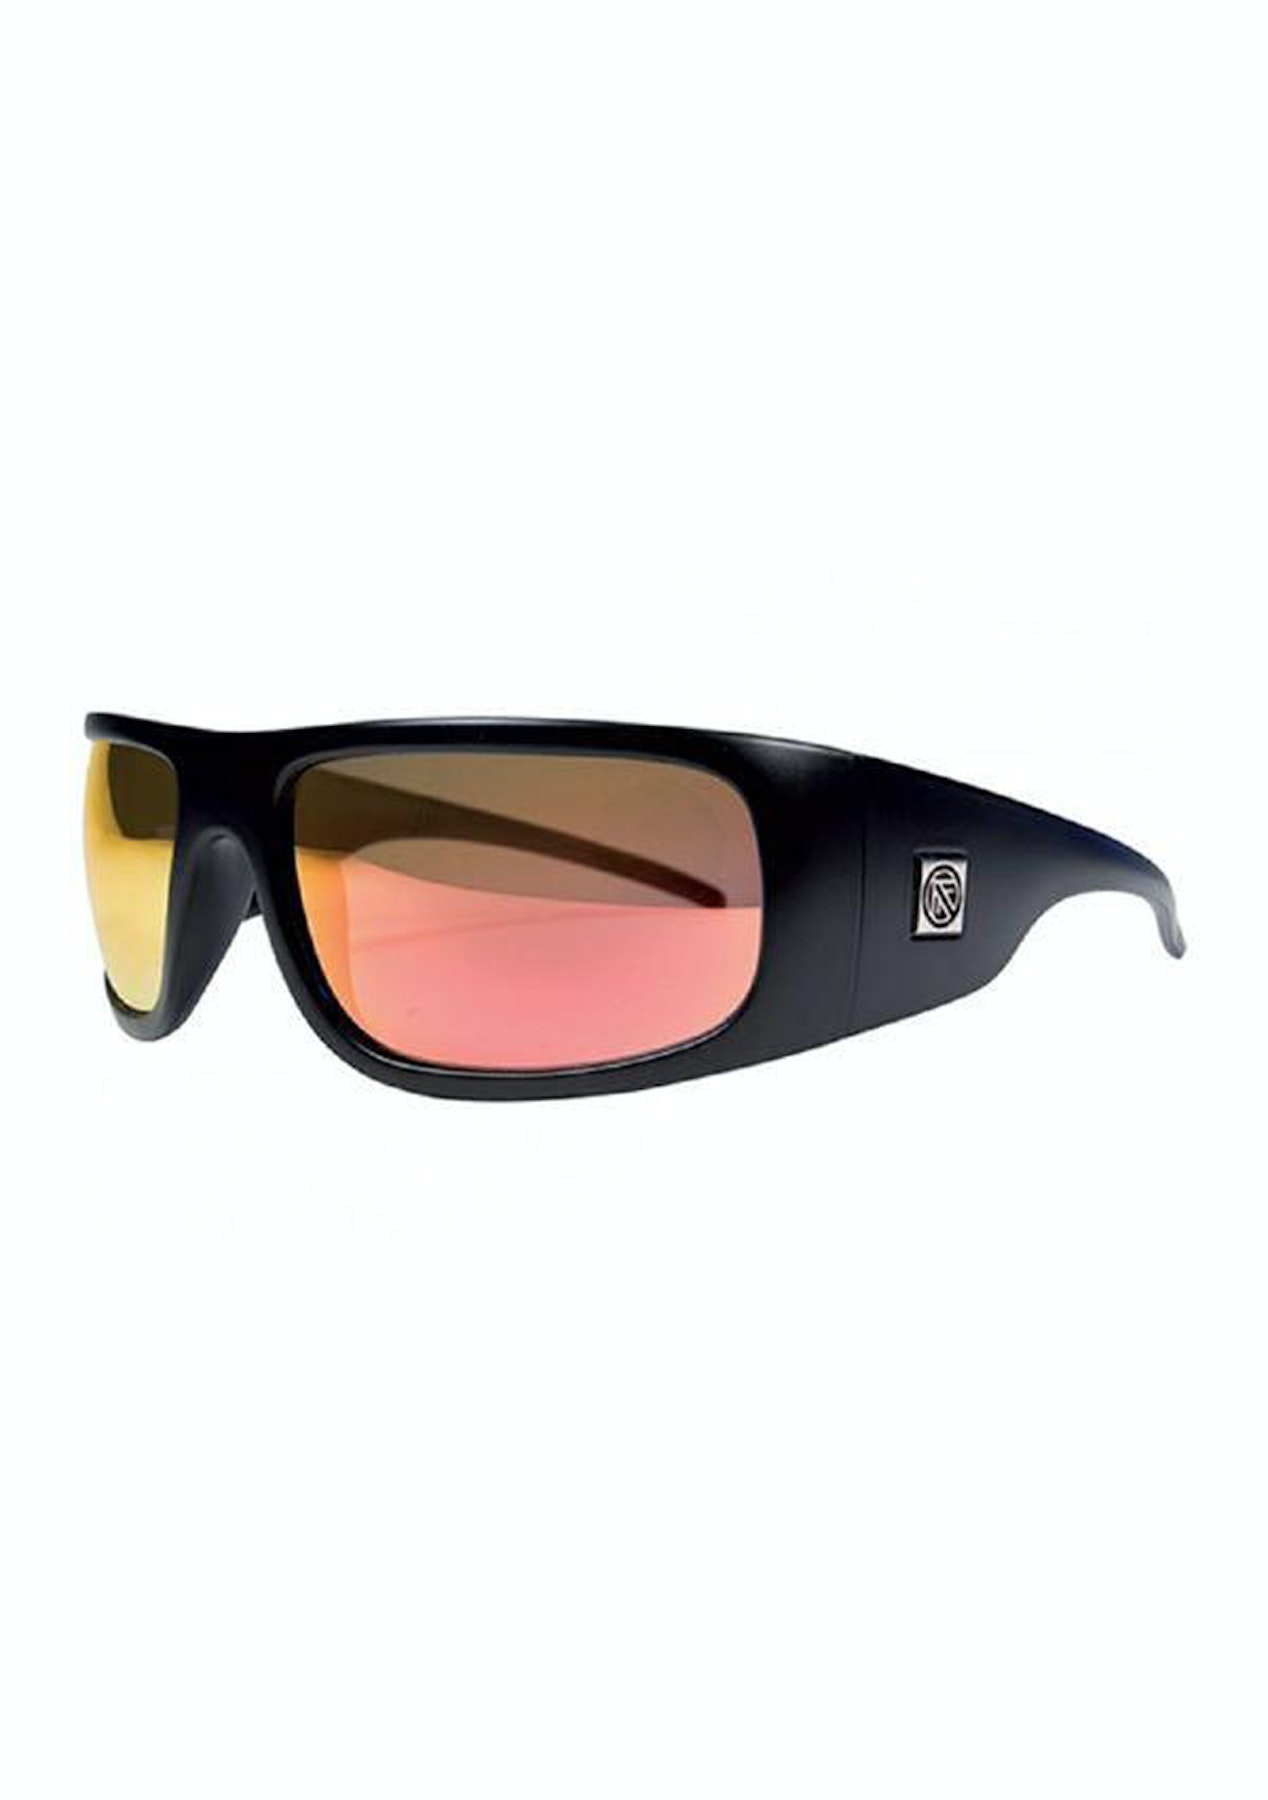 a347509e26 Filtrate Eyewear Vinyl Sunglasses - Black Matte   Red Mirror - Sunglasses  Super Sale From  9.95 - Onceit